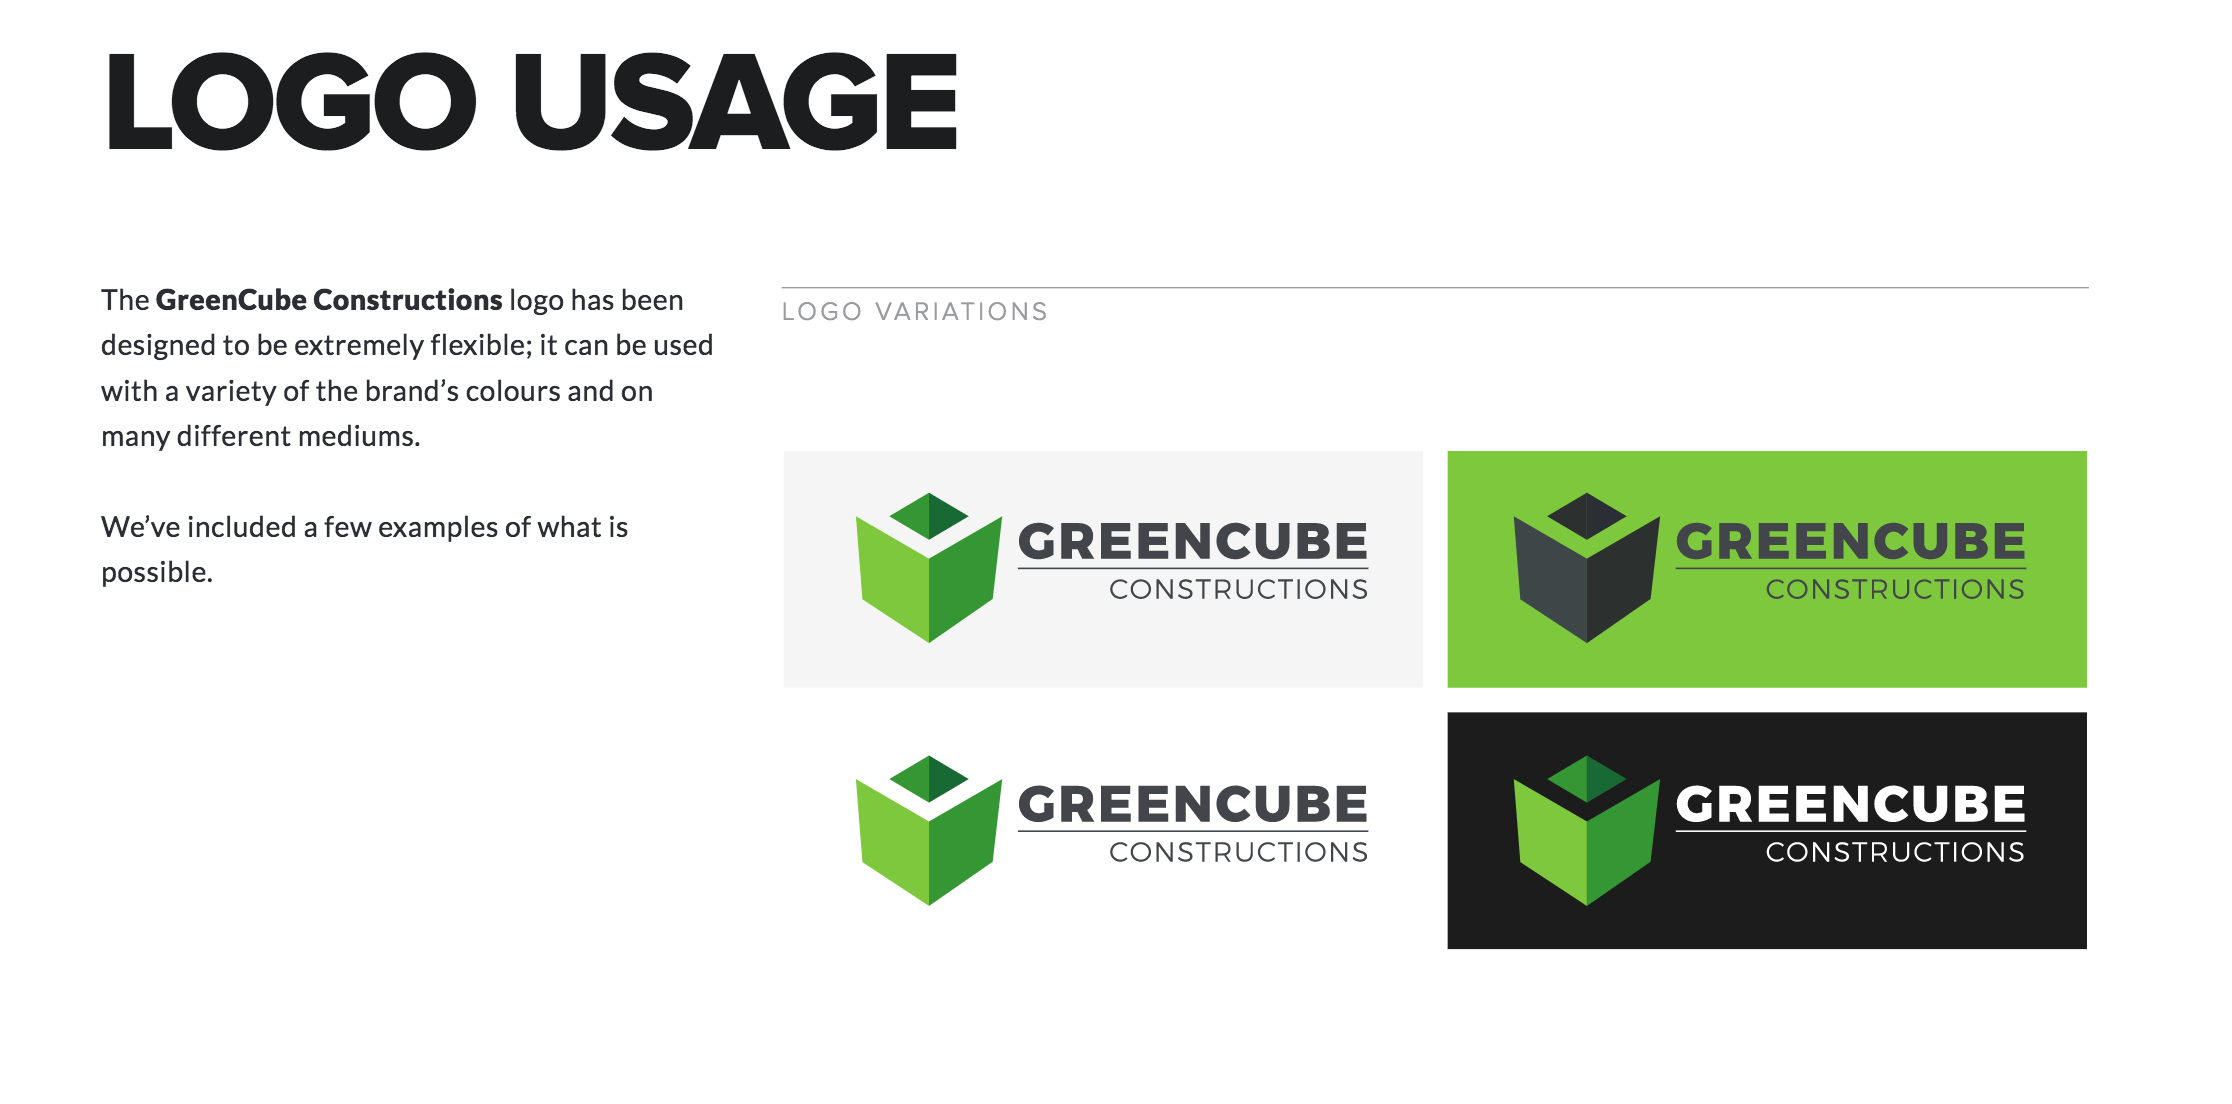 GreenCube Constructions Brand Guidelines Document Page 3